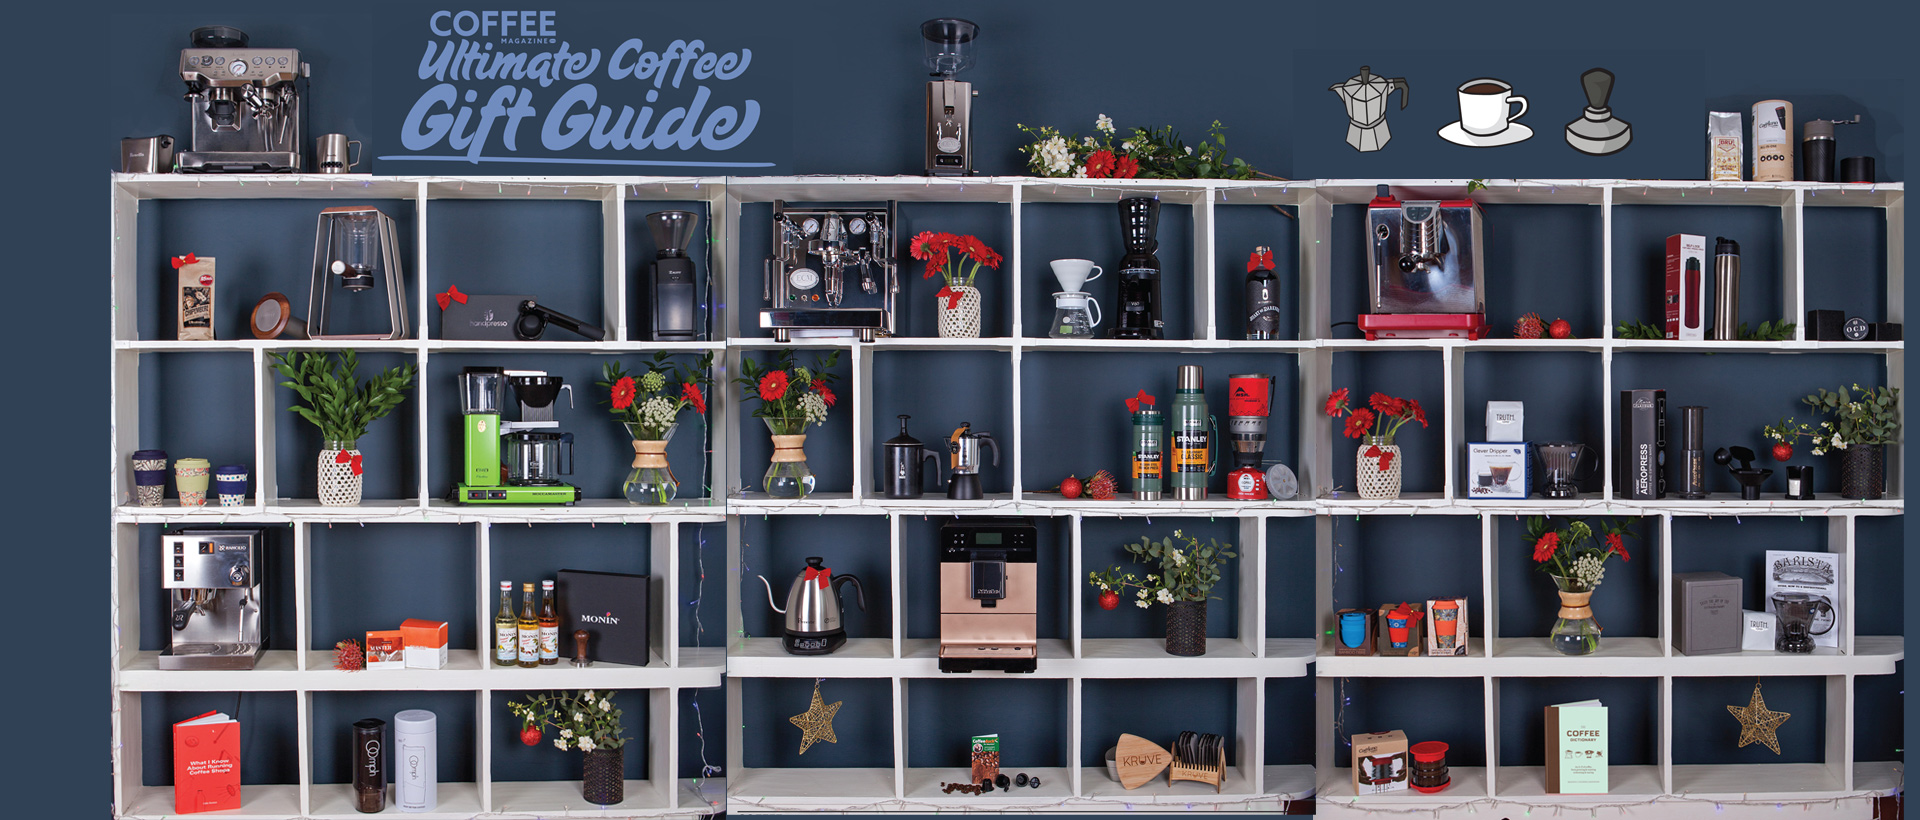 The Ultimate Coffee Gift Guide 2017/2018